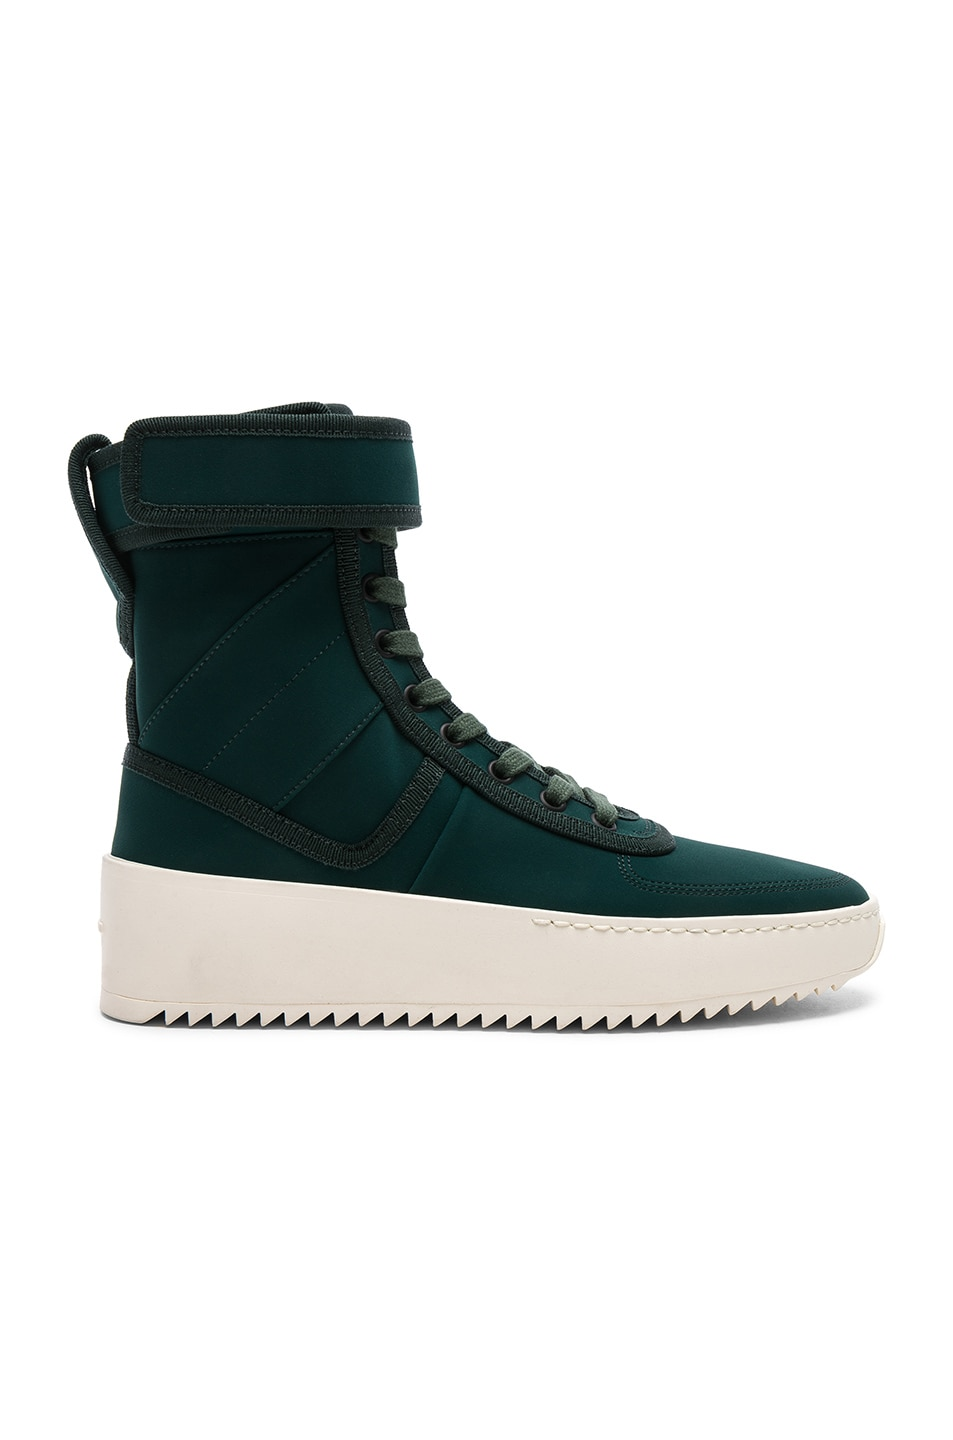 FEAR OF GOD NYLON MILITARY SNEAKERS IN GREEN